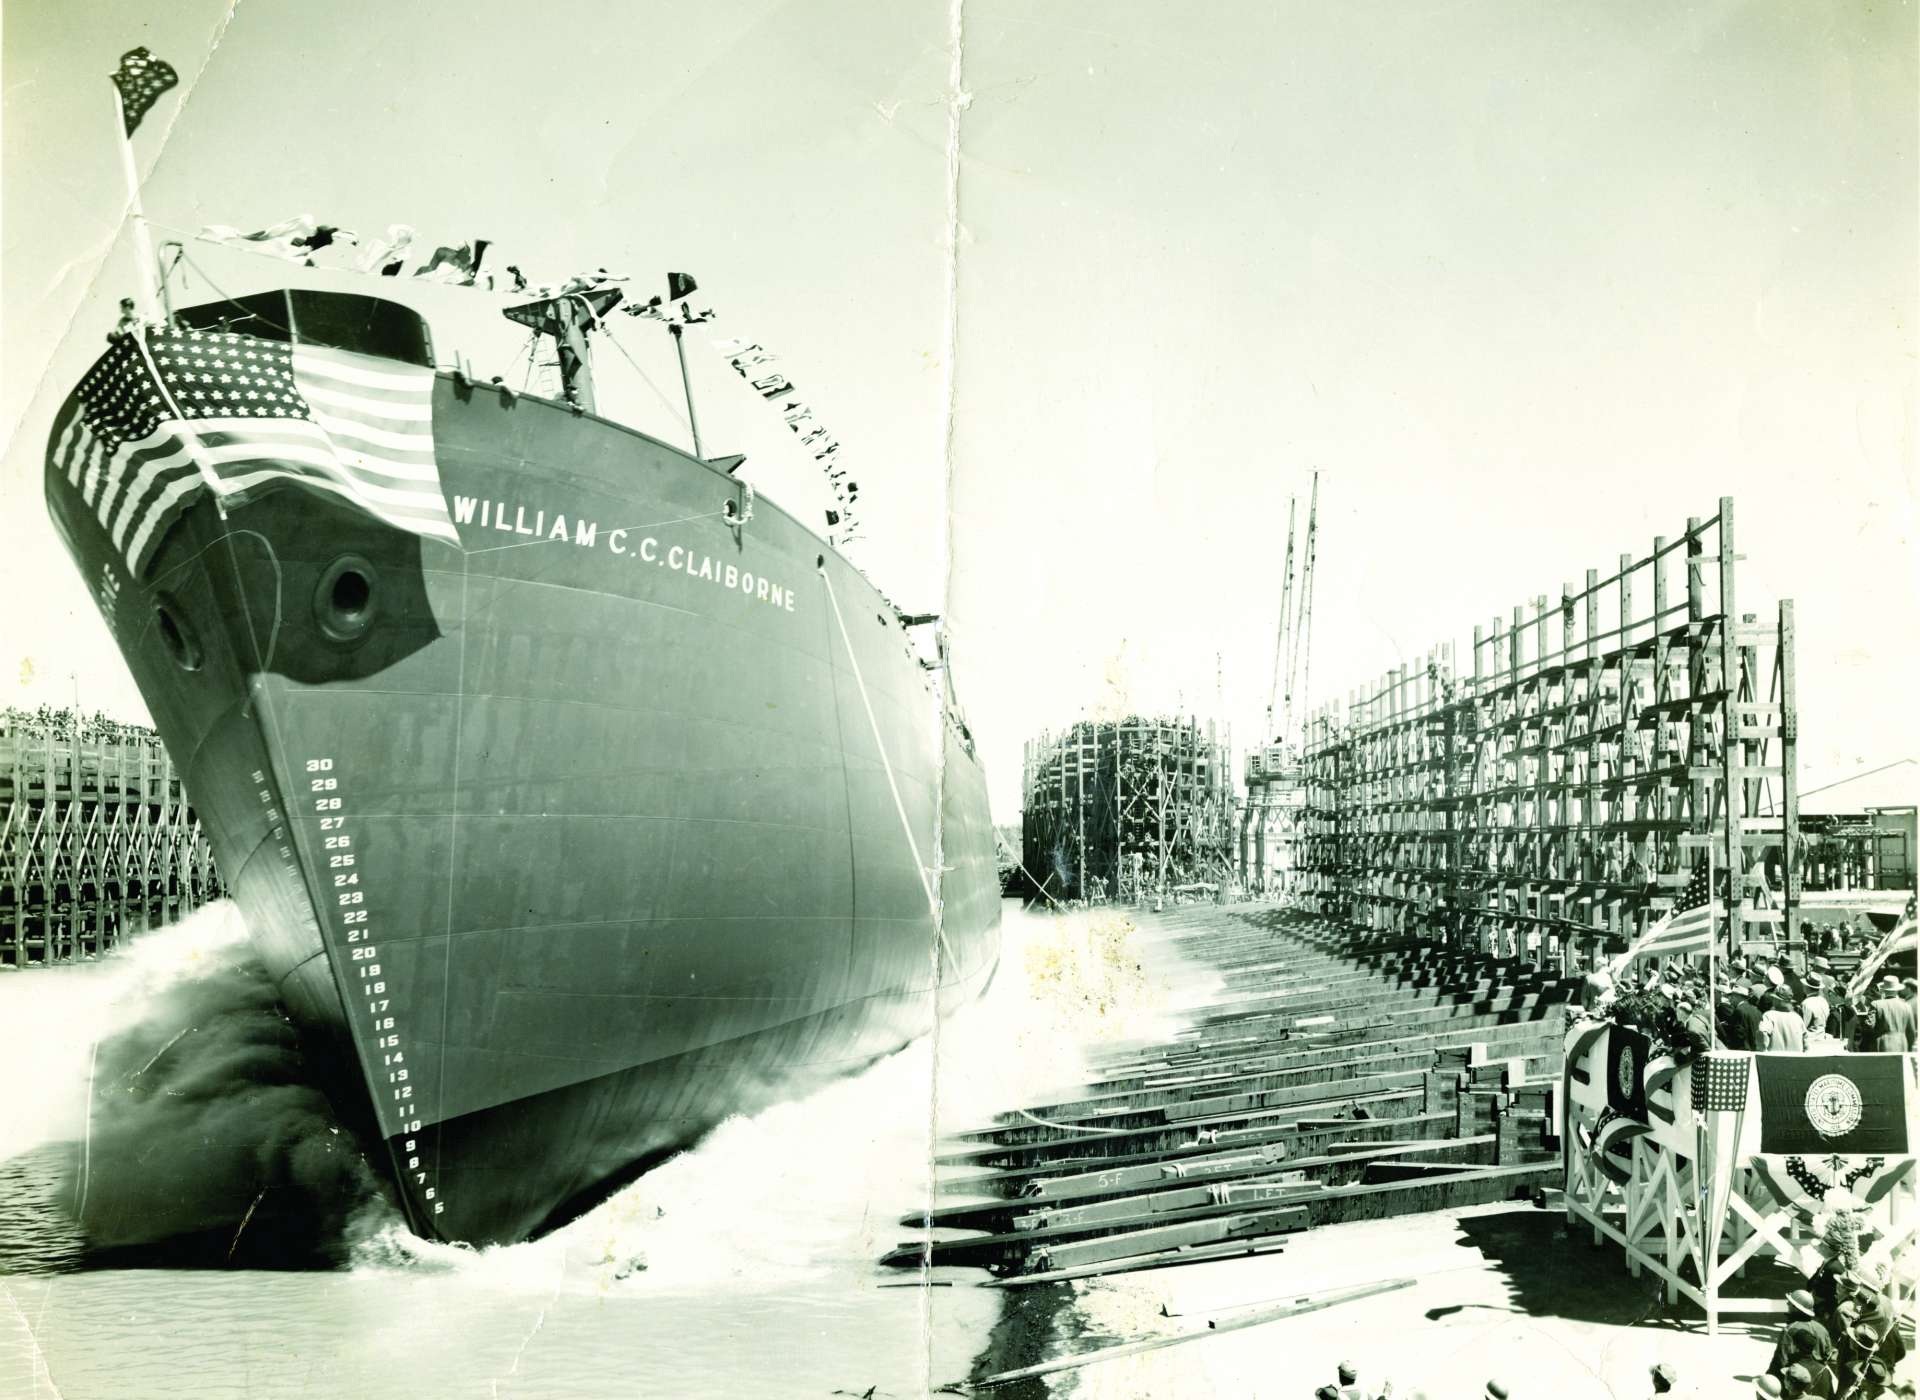 SS William C.C. Claiborne